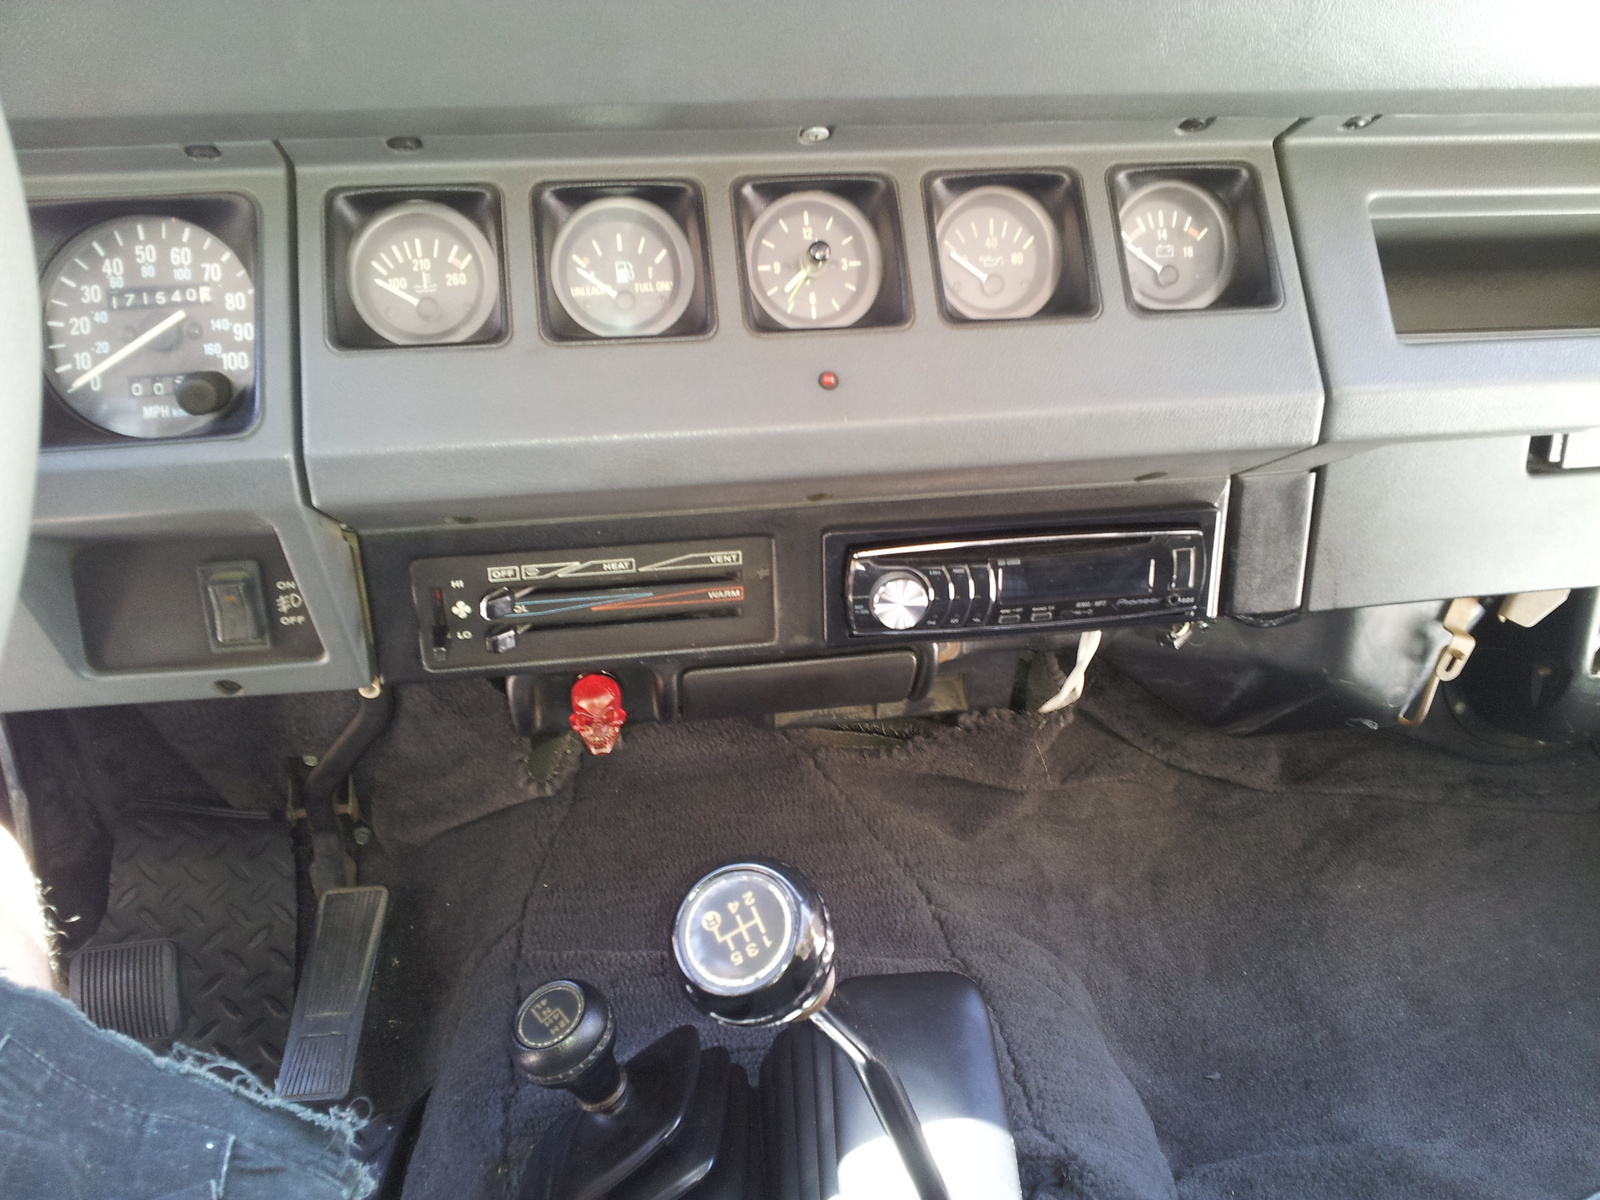 1989 jeep wrangler interior pictures cargurus. Cars Review. Best American Auto & Cars Review